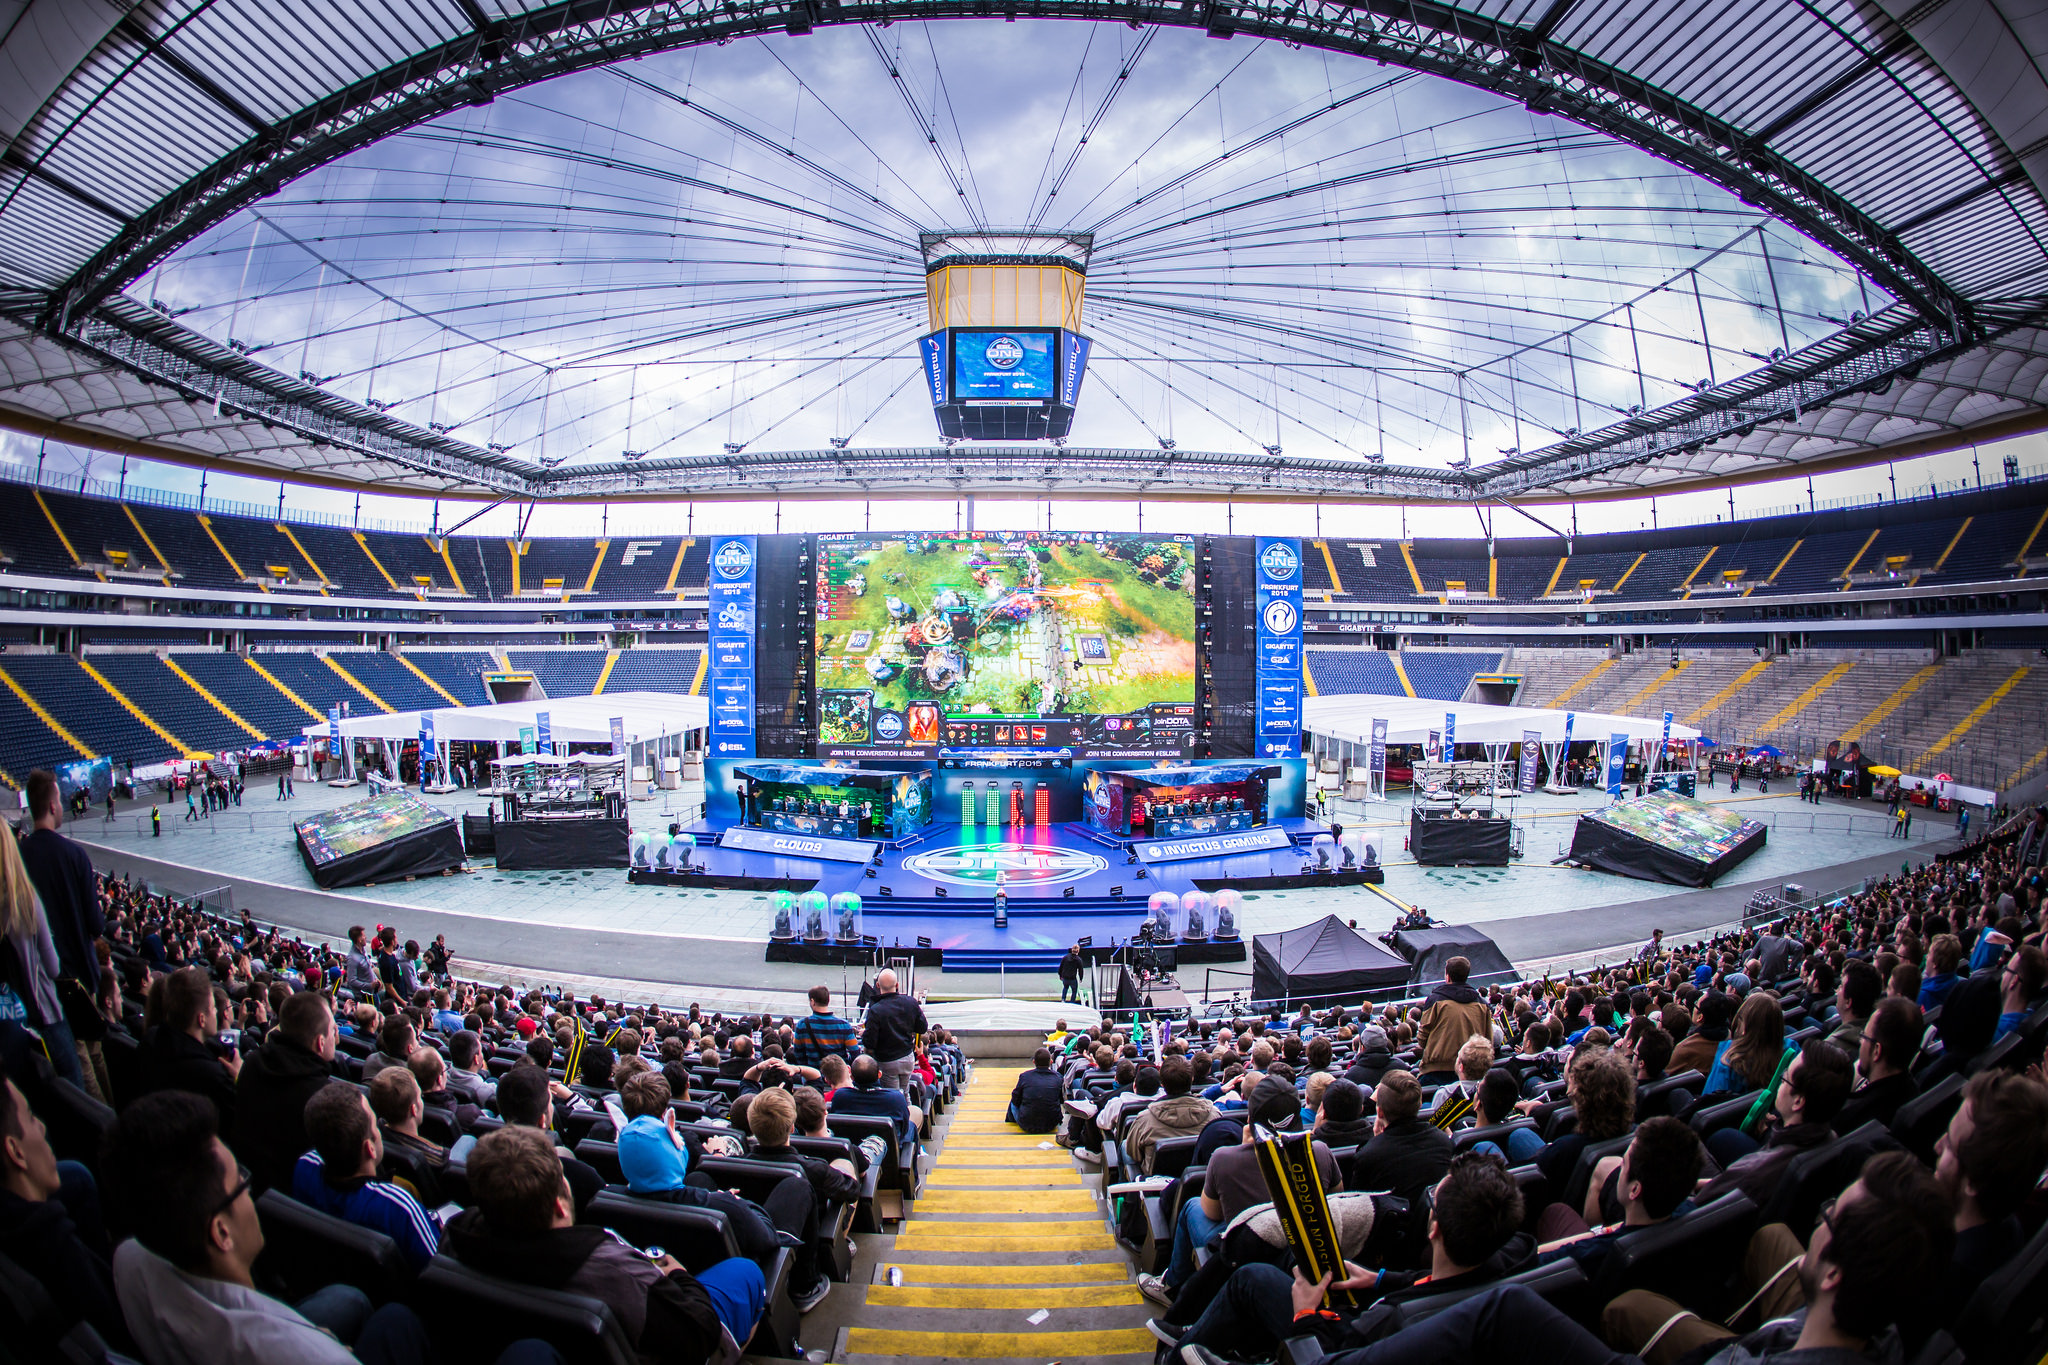 ESL One Frankfurt attracted over 30,000 eSports fans to a soccer stadium.